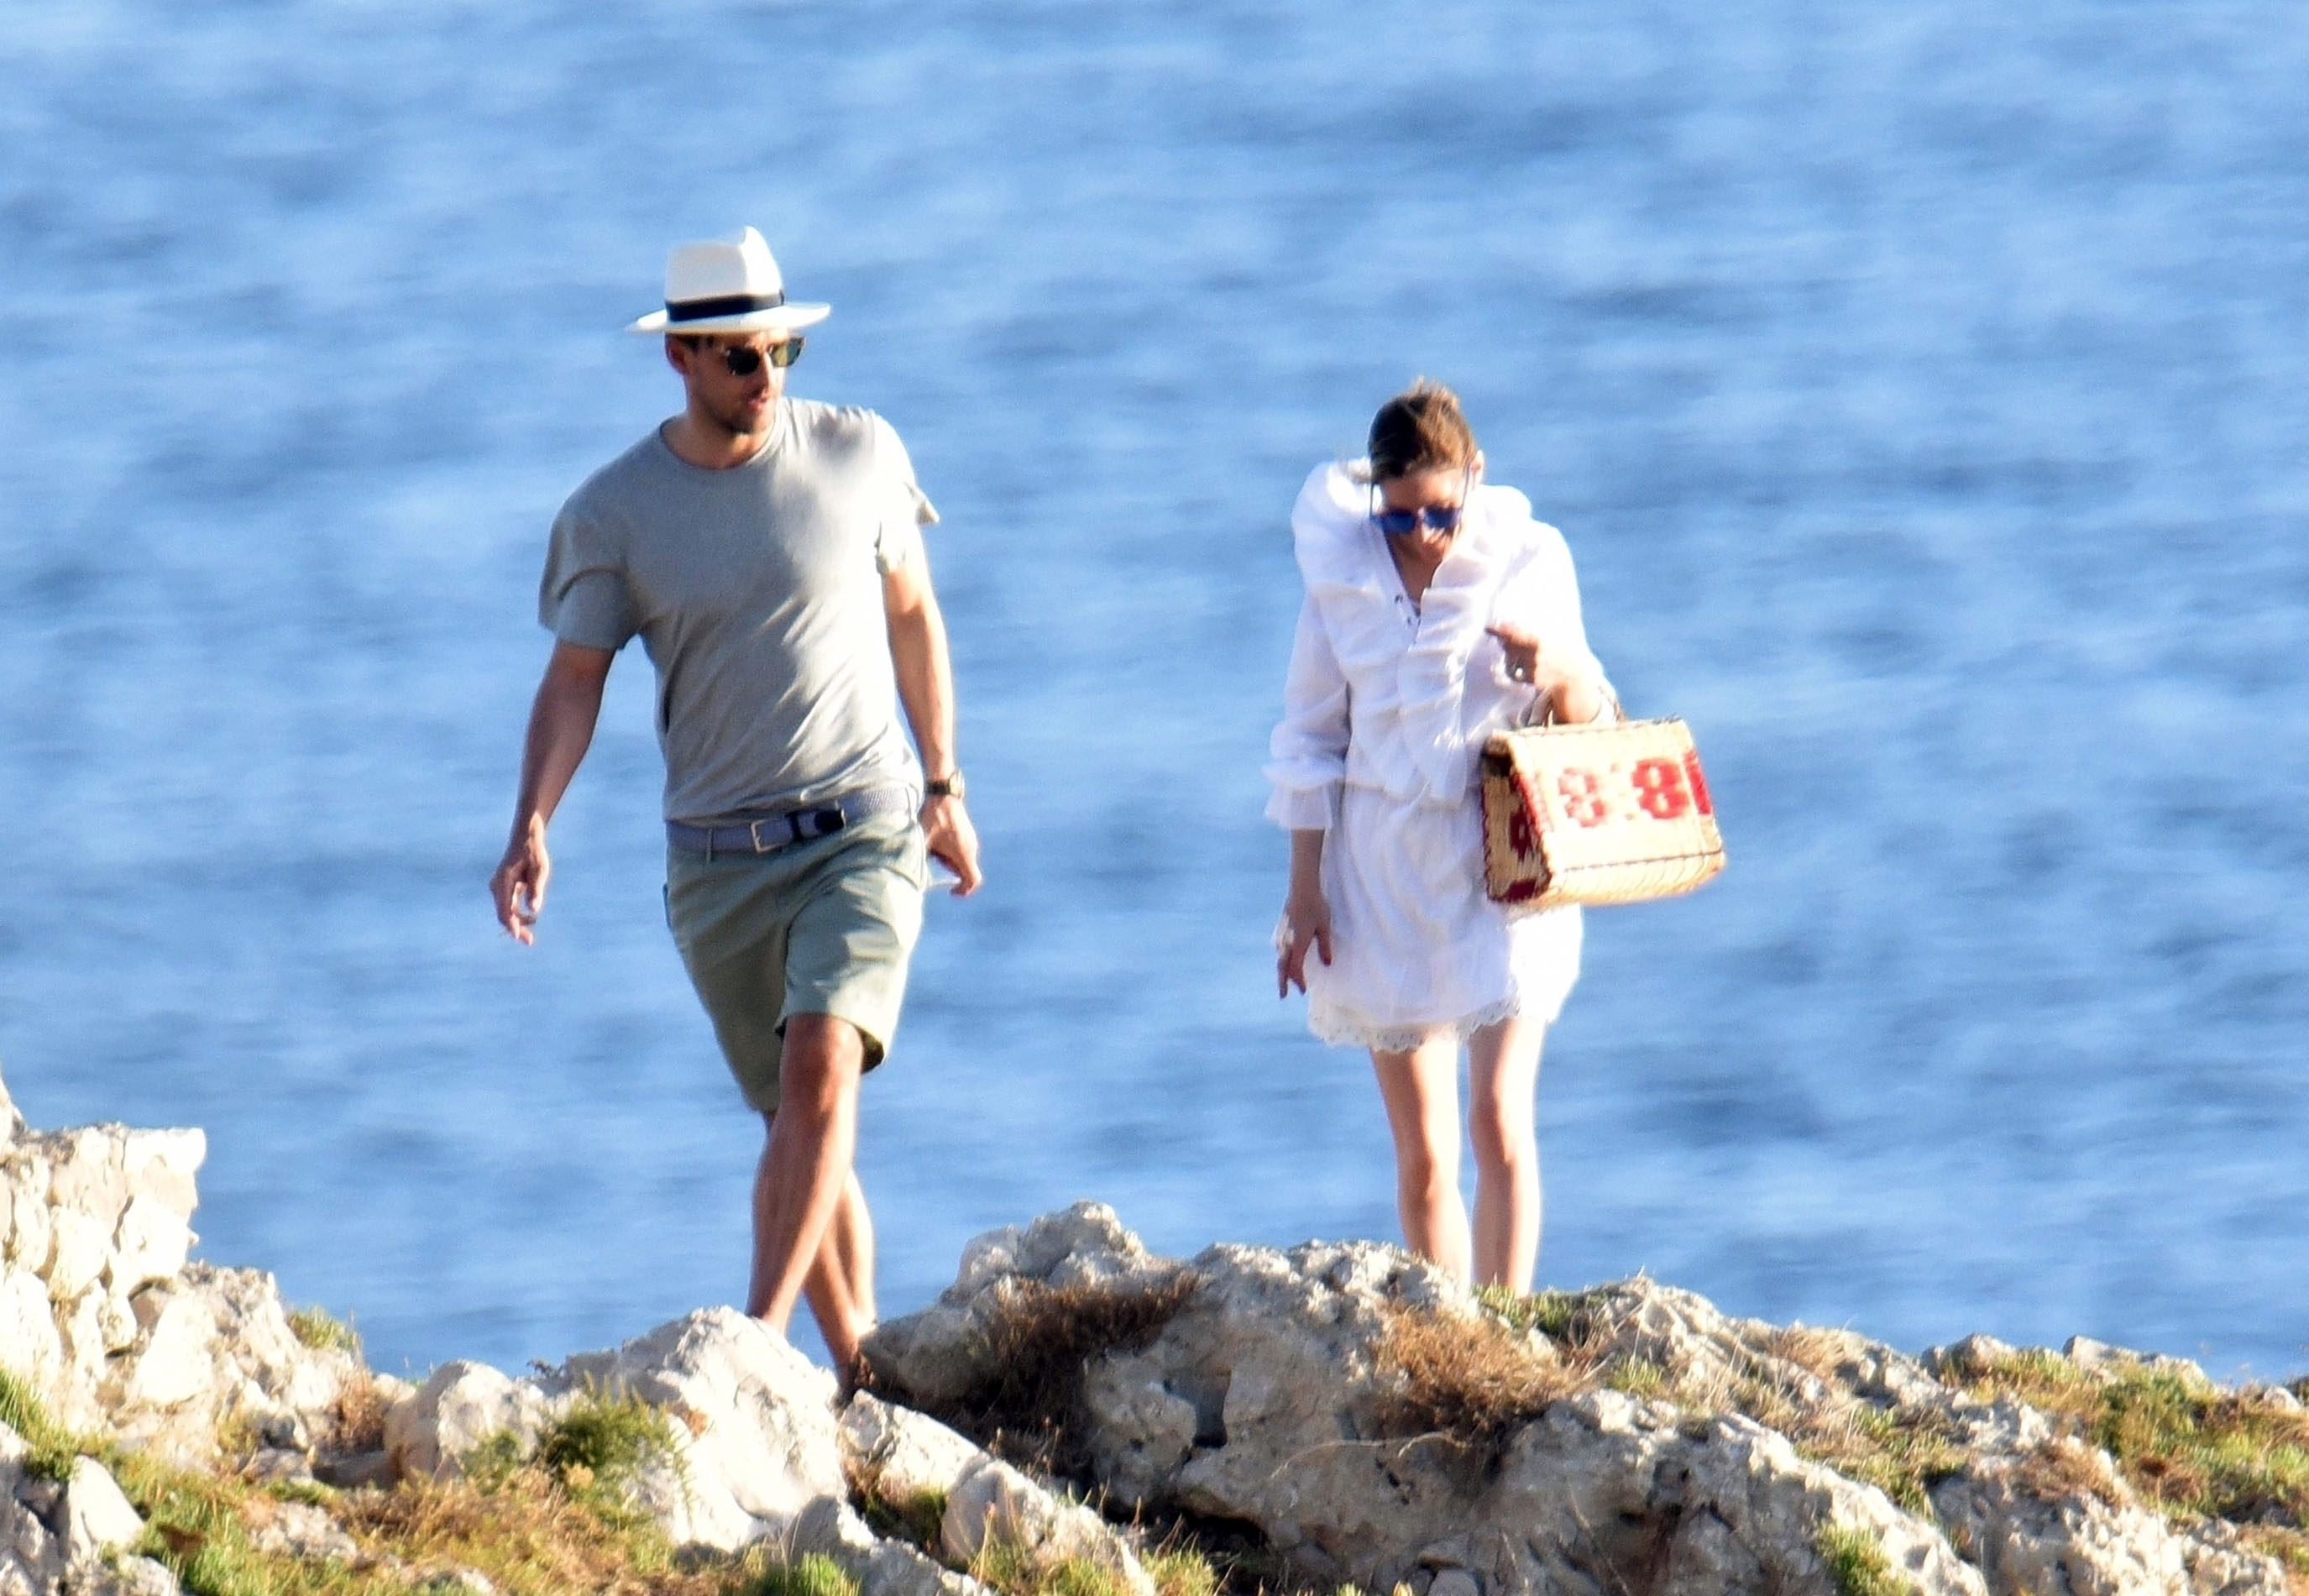 *EXCLUSIVE* ** RIGHTS: WORLDWIDE EXCEPT IN FRANCE, ITALY, SPAIN ** Italy, ITALY  - American socialite Olivia Palermo and husband Johannes Huebl pictured taking in some sightseeing while on Holiday In Capri - Olivia's Husband Johannes Huebl is pictured having a cheeky grab of Olivia derriere as they took a selfie and shared a kiss together.  Pictured: Olivia Palermo and Johannes Huebl  BACKGRID UK 10 JULY 2017   UK: +44 208 344 2007 / uksales@backgrid.com  USA: +1 310 798 9111 / usasales@backgrid.com  *UK Clients - Pictures Containing Children Please Pixelate Face Prior To Publication*, Image: 341498700, License: Rights-managed, Restrictions: , Model Release: no, Credit line: Profimedia, Xposurephotos